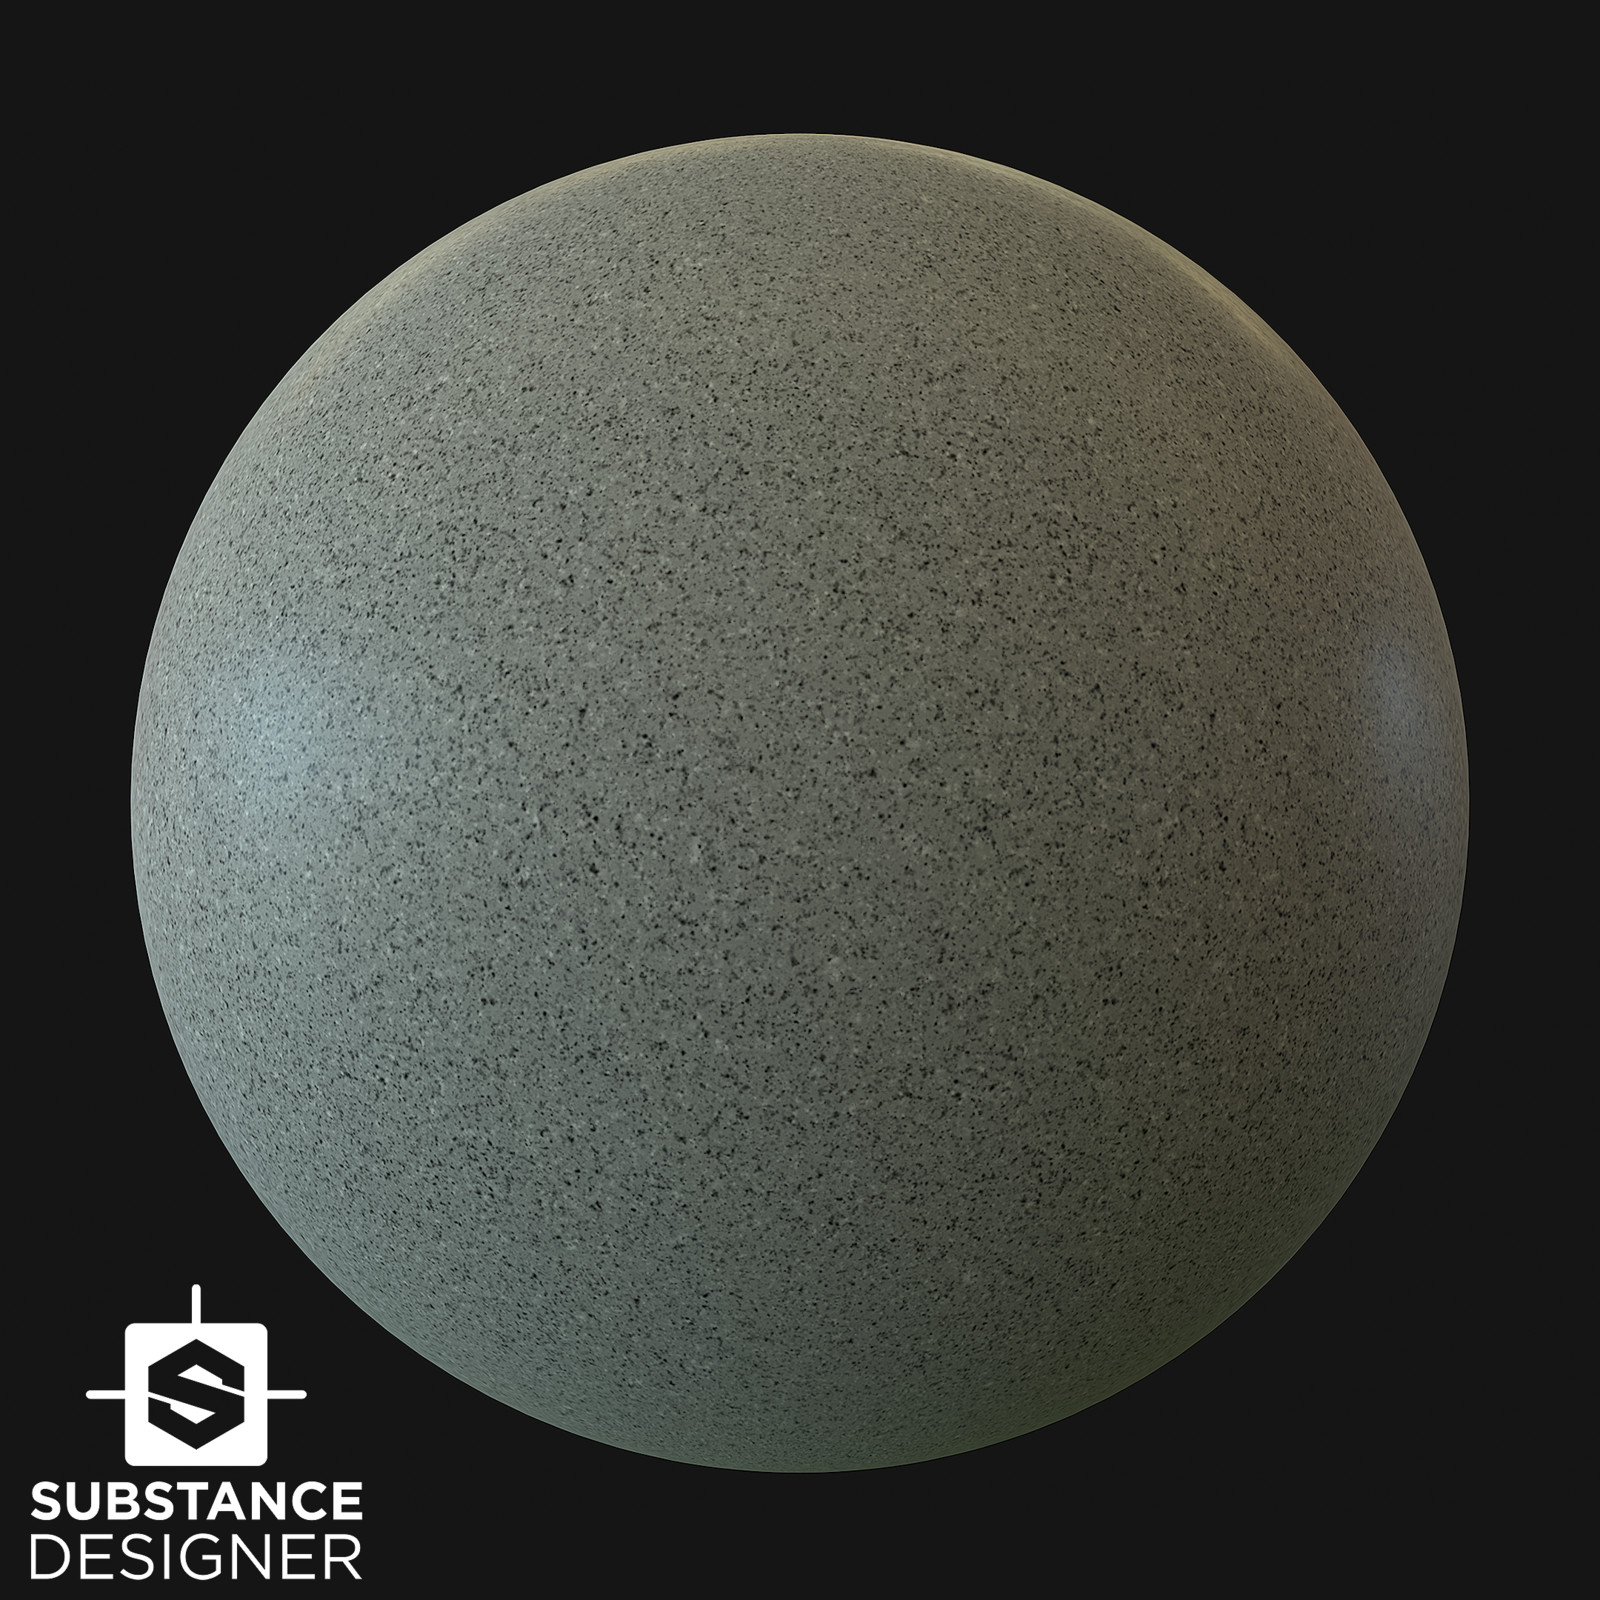 Vinyl - Speckled - Substance Designer Material